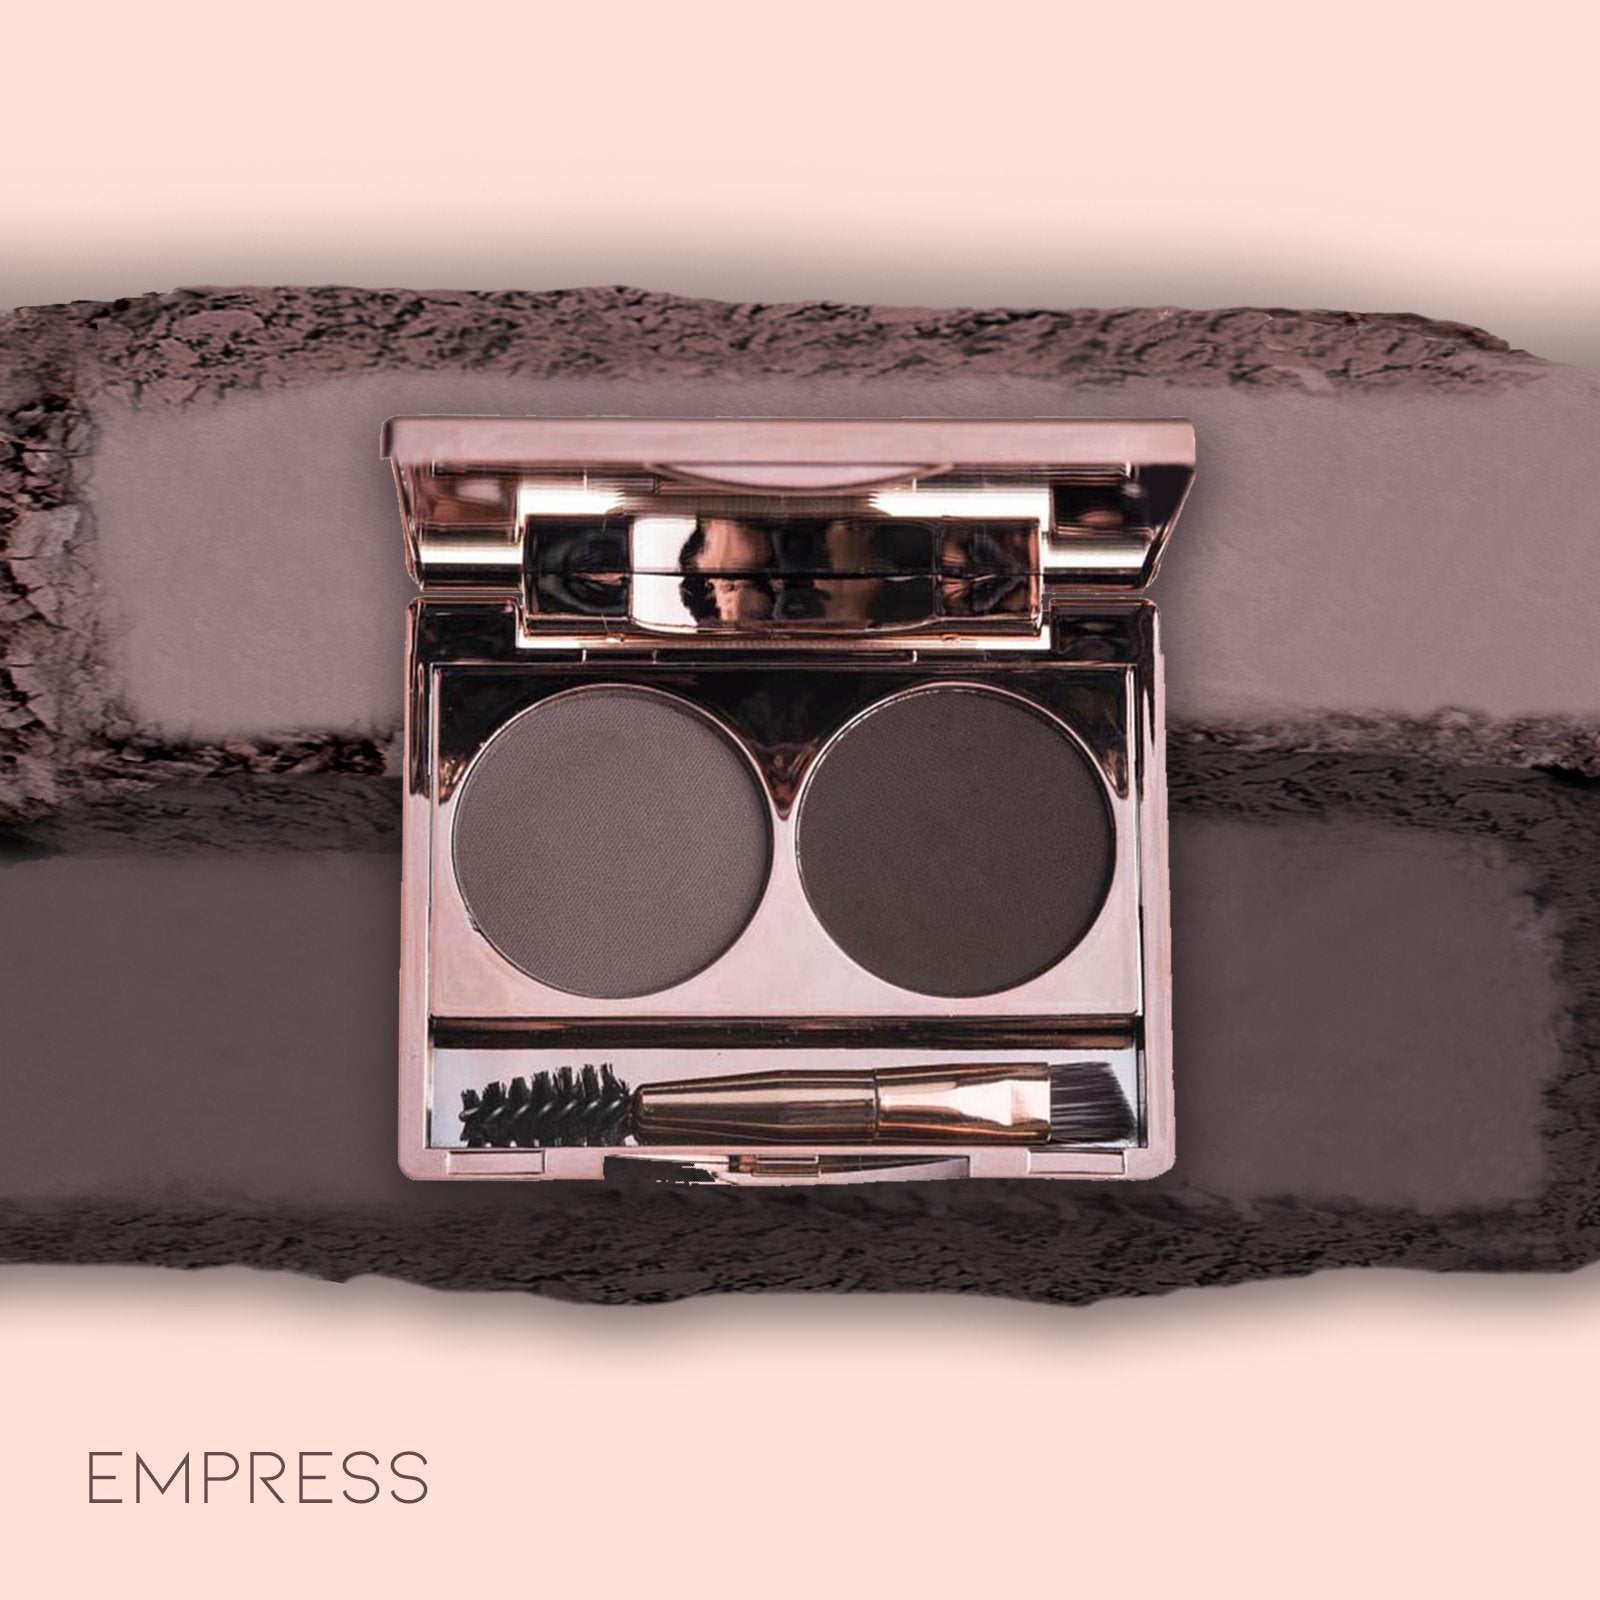 EMPRESS EYEBROW DUO POWDER - Teviant Beauty